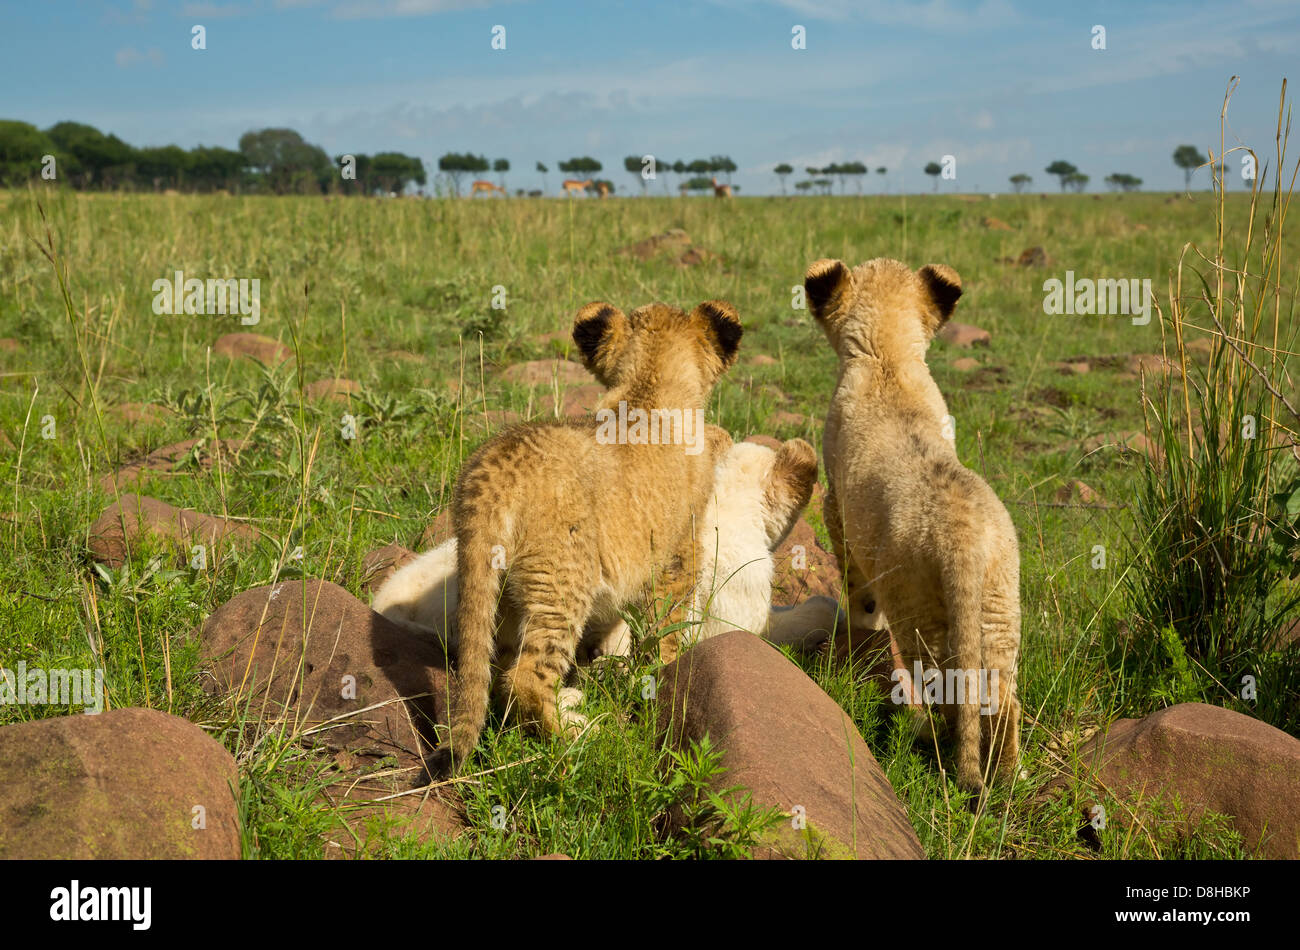 White and Tawny Lion cubs watching bucks. - Stock Image